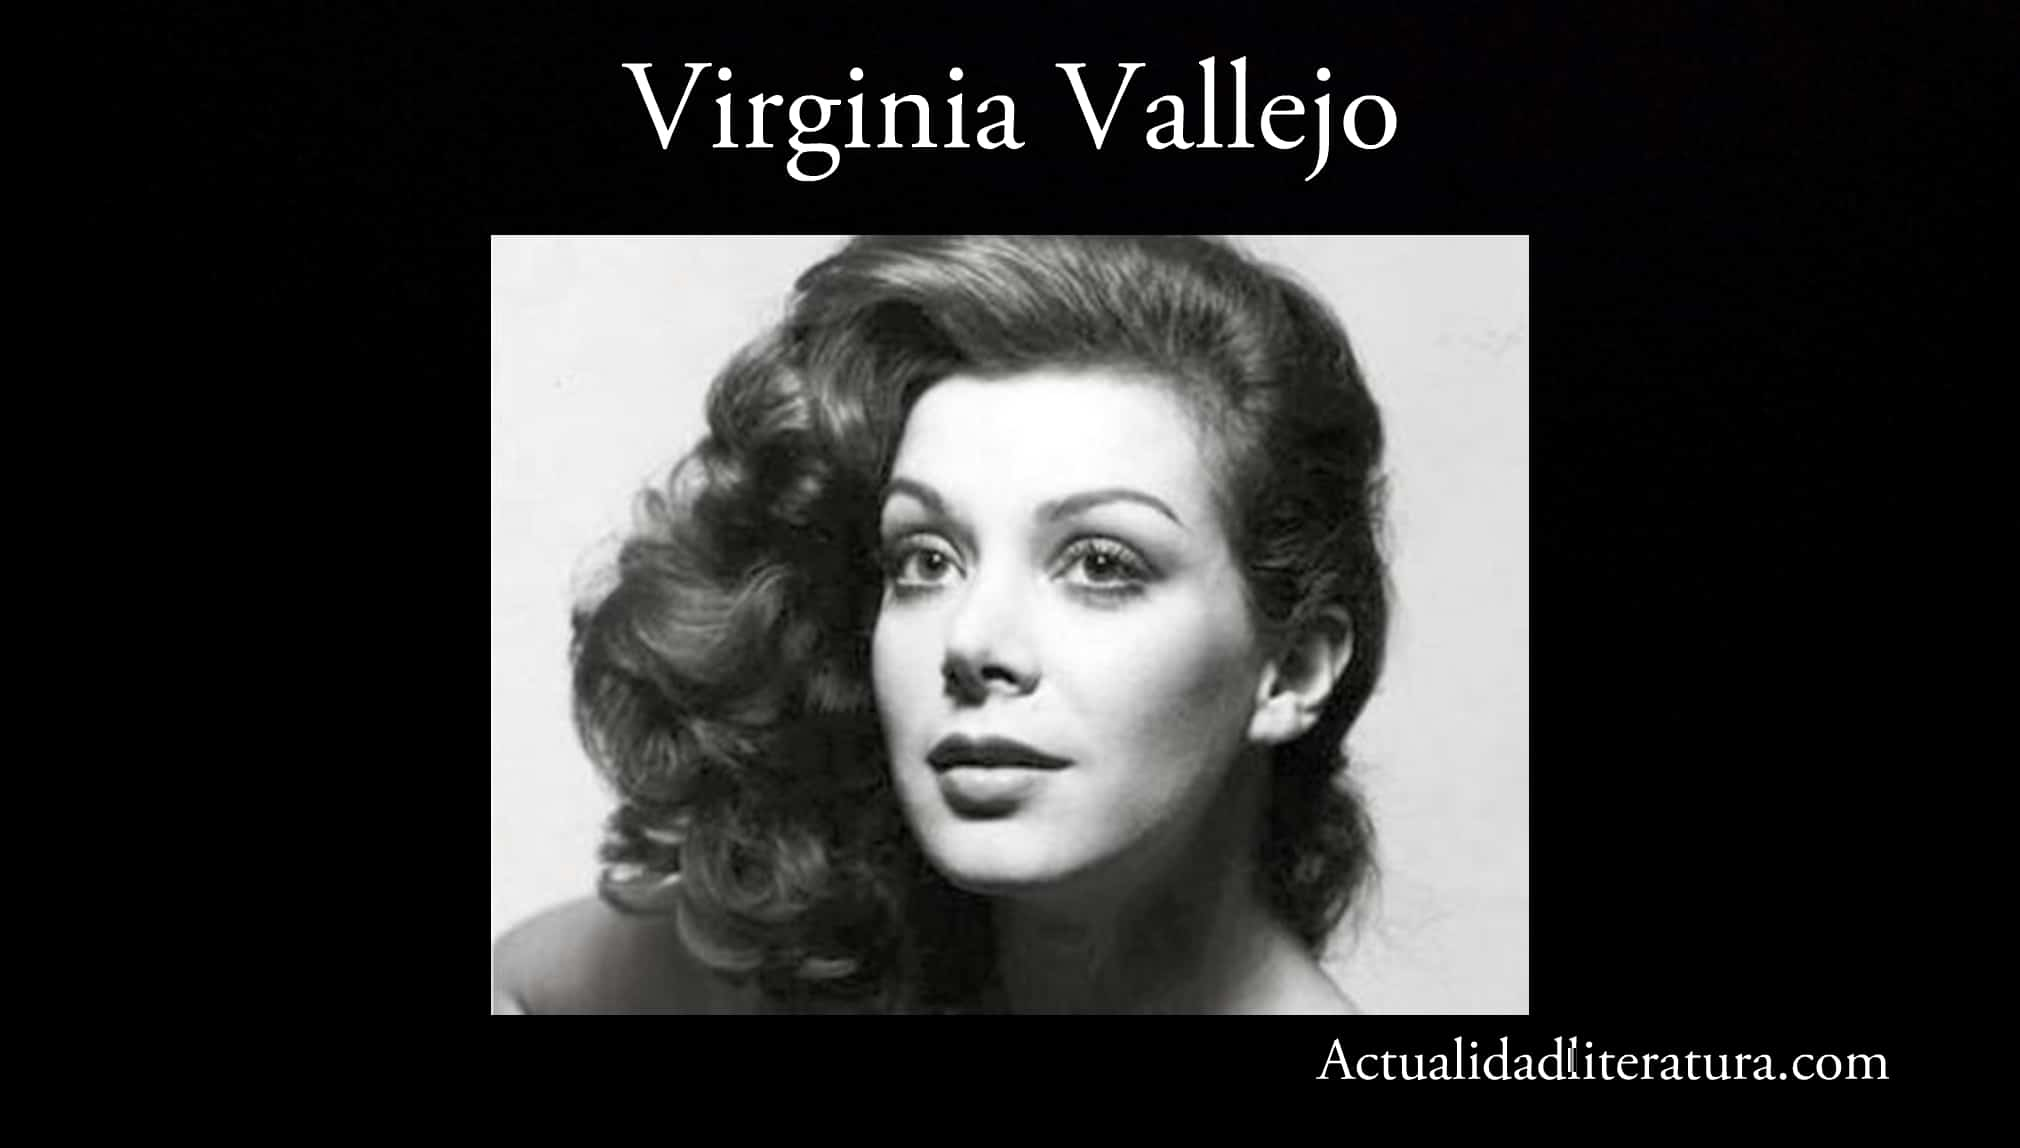 Virginia Vallejo.